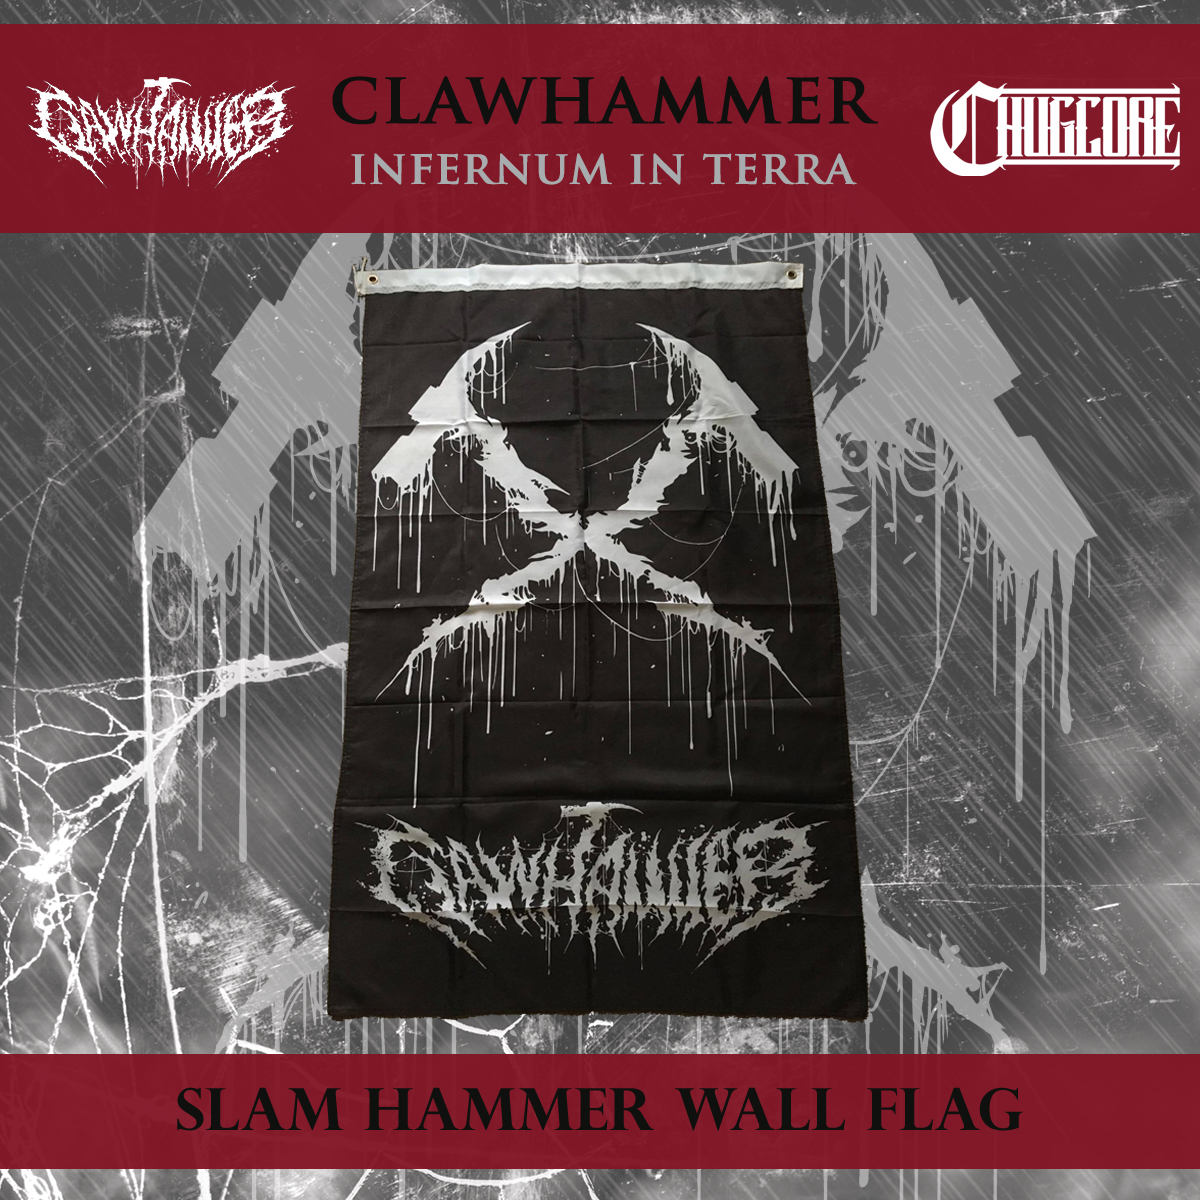 62716cccee1 Clawhammer - Wall Flag · Chugcore · Online Store Powered by Storenvy